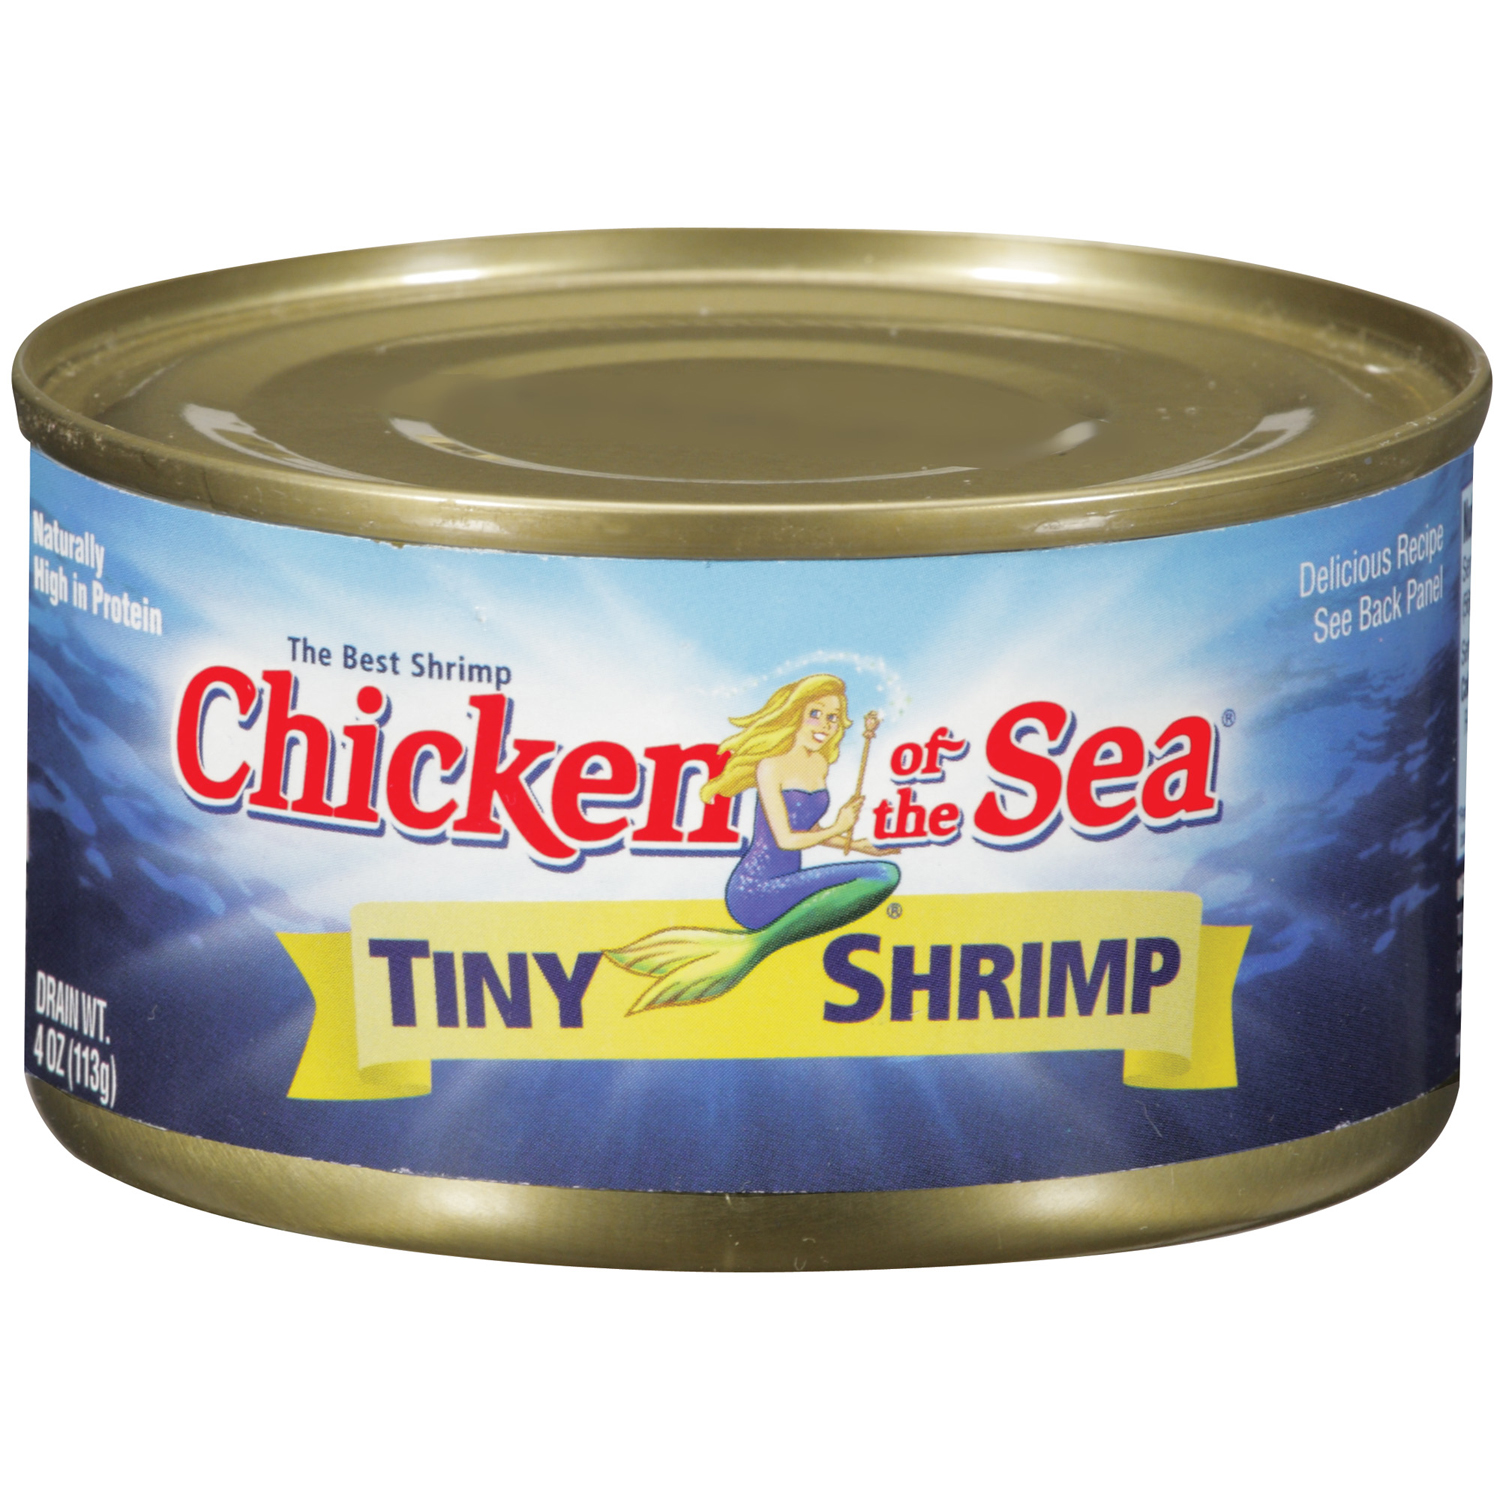 CHICKEN OF THE SEA Tiny Shrimp 4 OZ CAN by Chicken of The Sea International